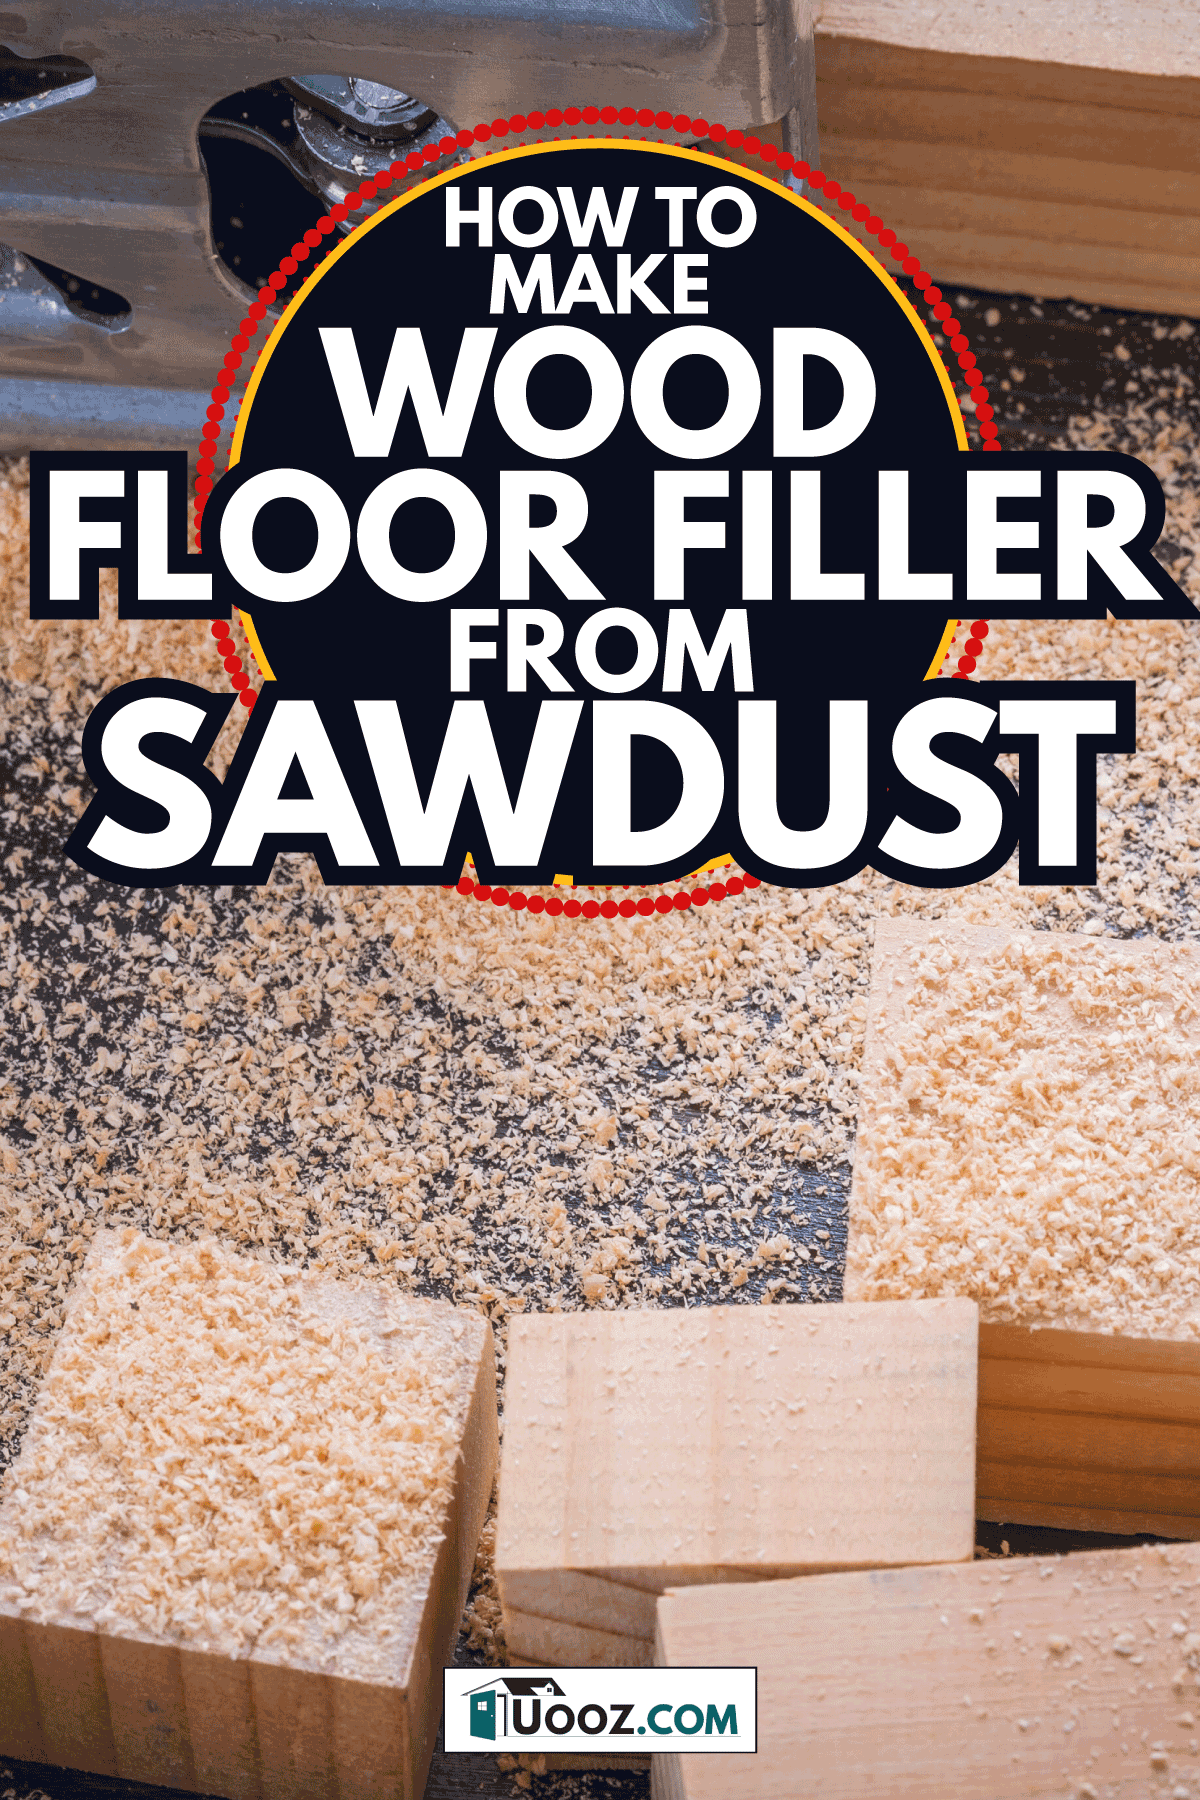 Electrical fretsaw sawdust and wooden bricks. How To Make Wood Floor Filler From Sawdust